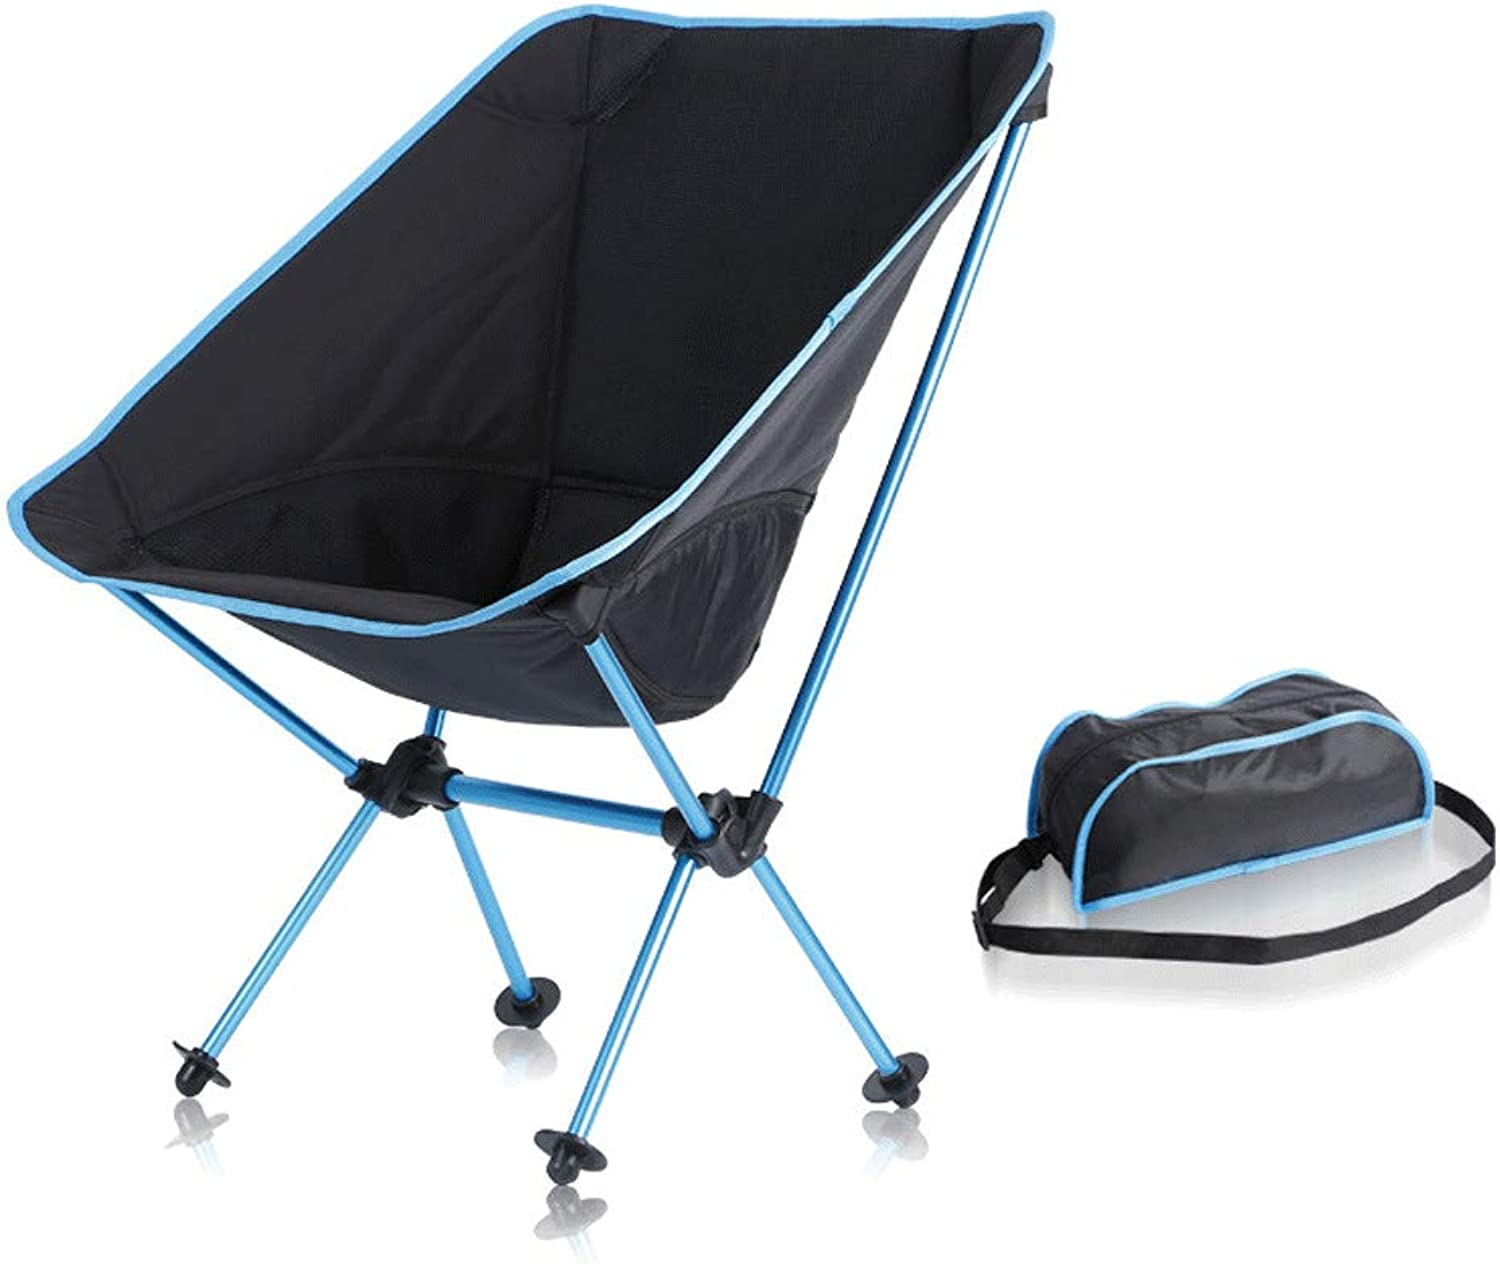 Thick Aluminum Alloy Ultra Light Folding Chair Short Moon Chair Outdoor Backrest Oxford Cloth Chair for BBQ Camping Fishing Hiking Beach,Versatility